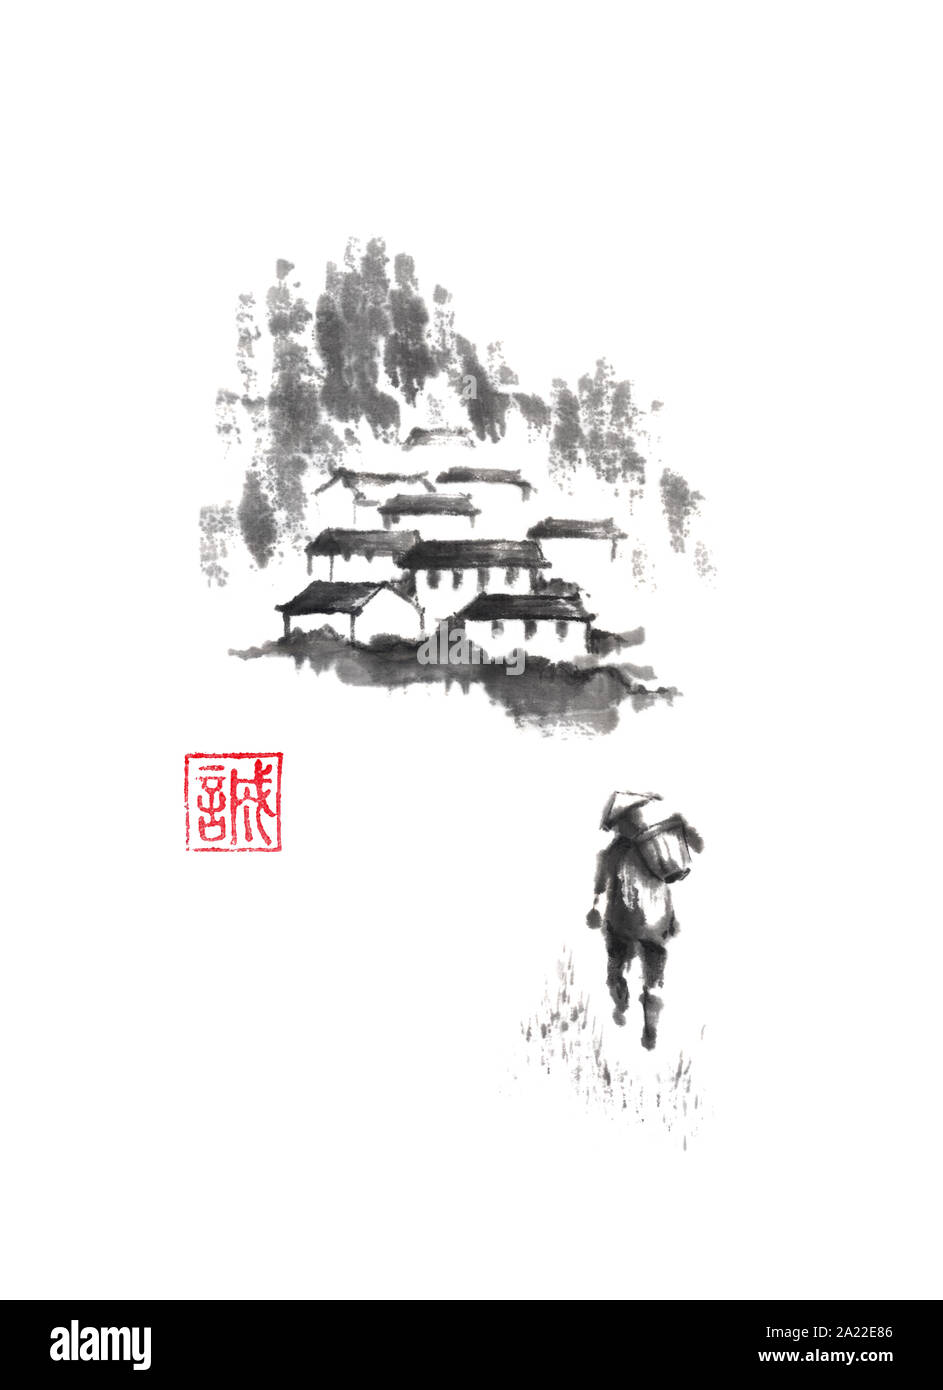 Man and mountain village Japanese style original sumi-e ink painting. Hieroglyph featured means sincerity. Great for greeting cards or texture design. Stock Photo